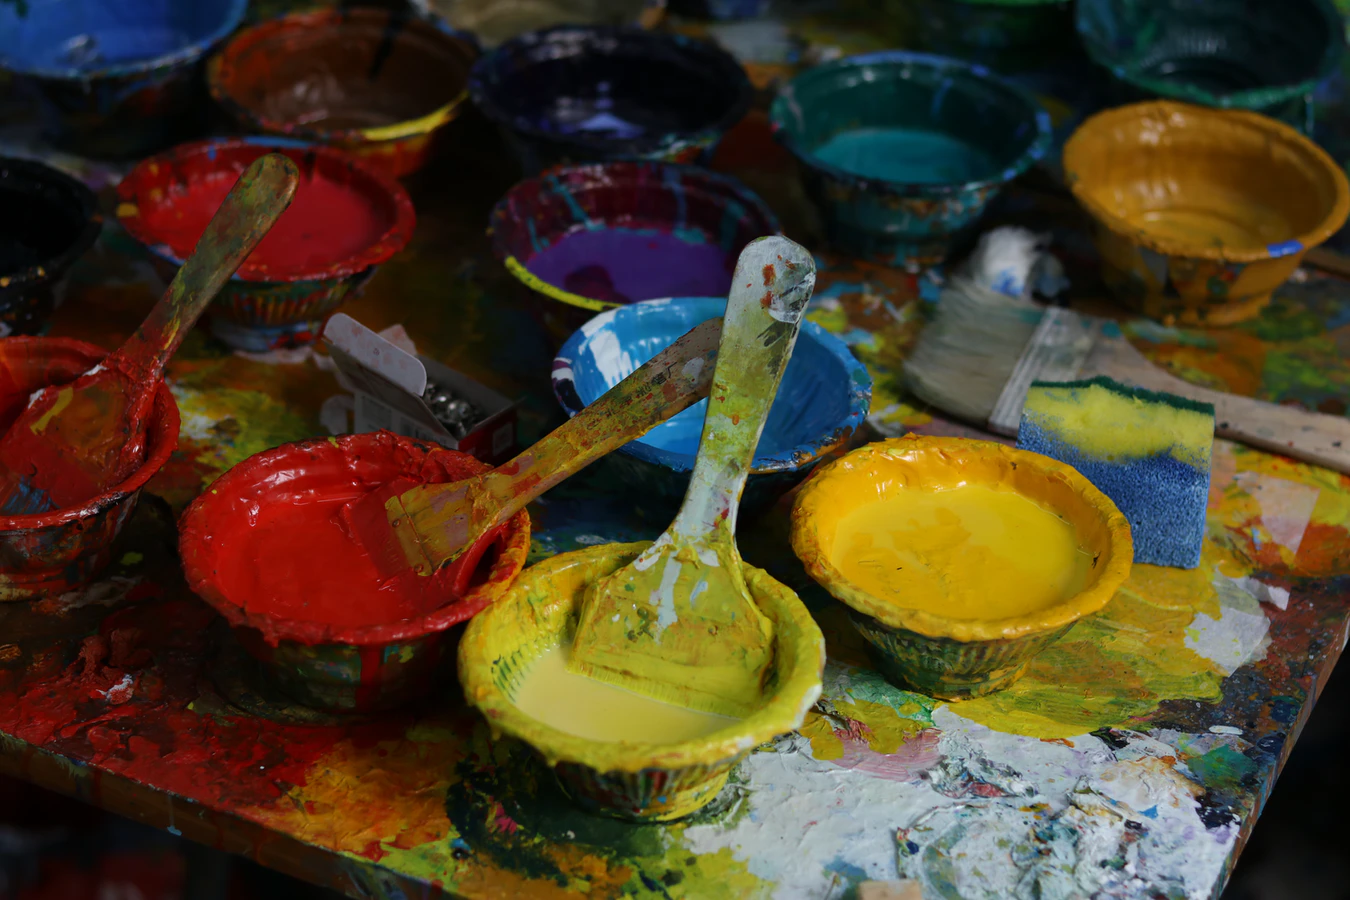 How to Protect Acrylic Paint From Being Washed